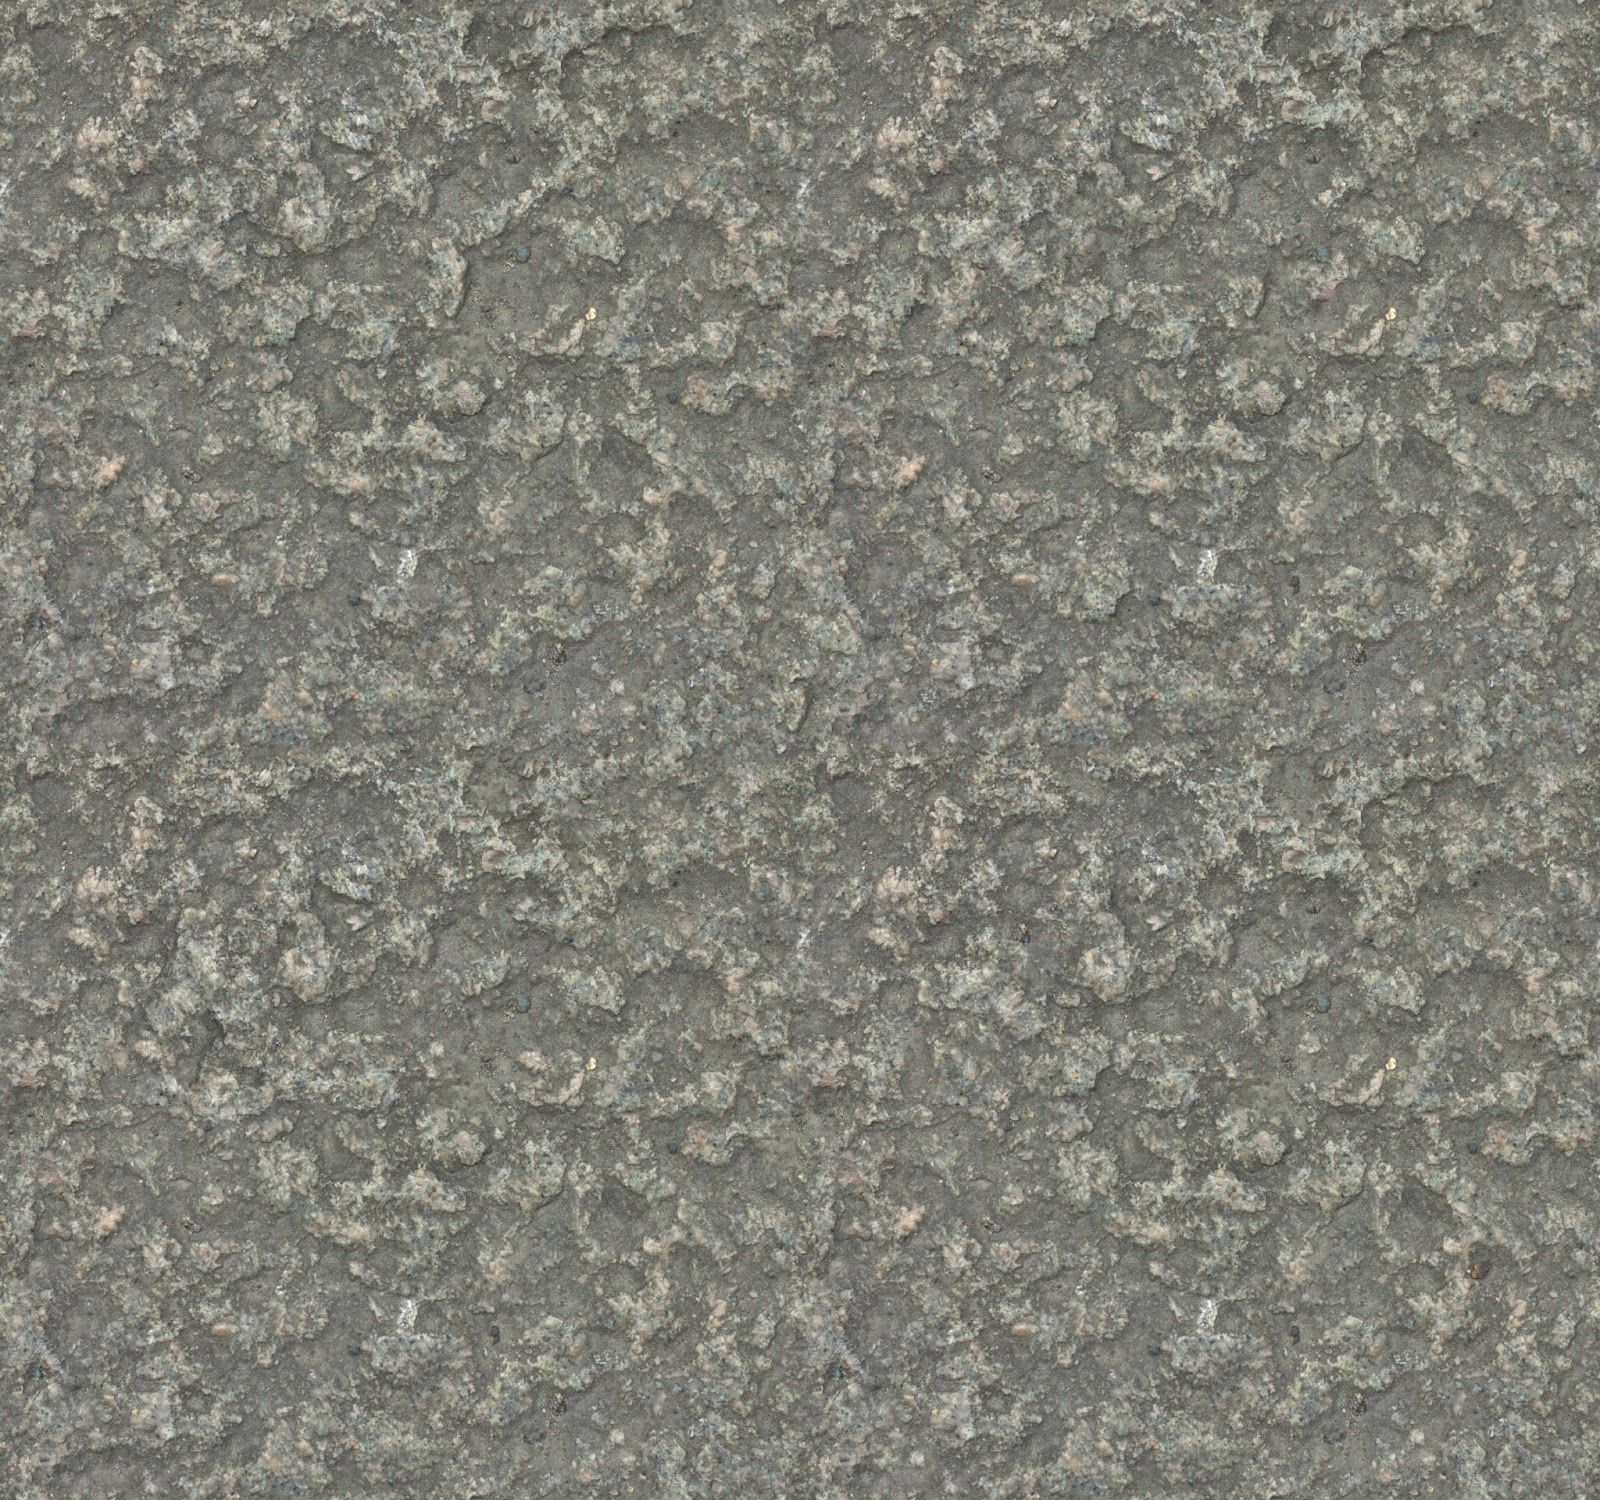 CONCRETE 15 Seamless Floor Granite Texture 2048x2048